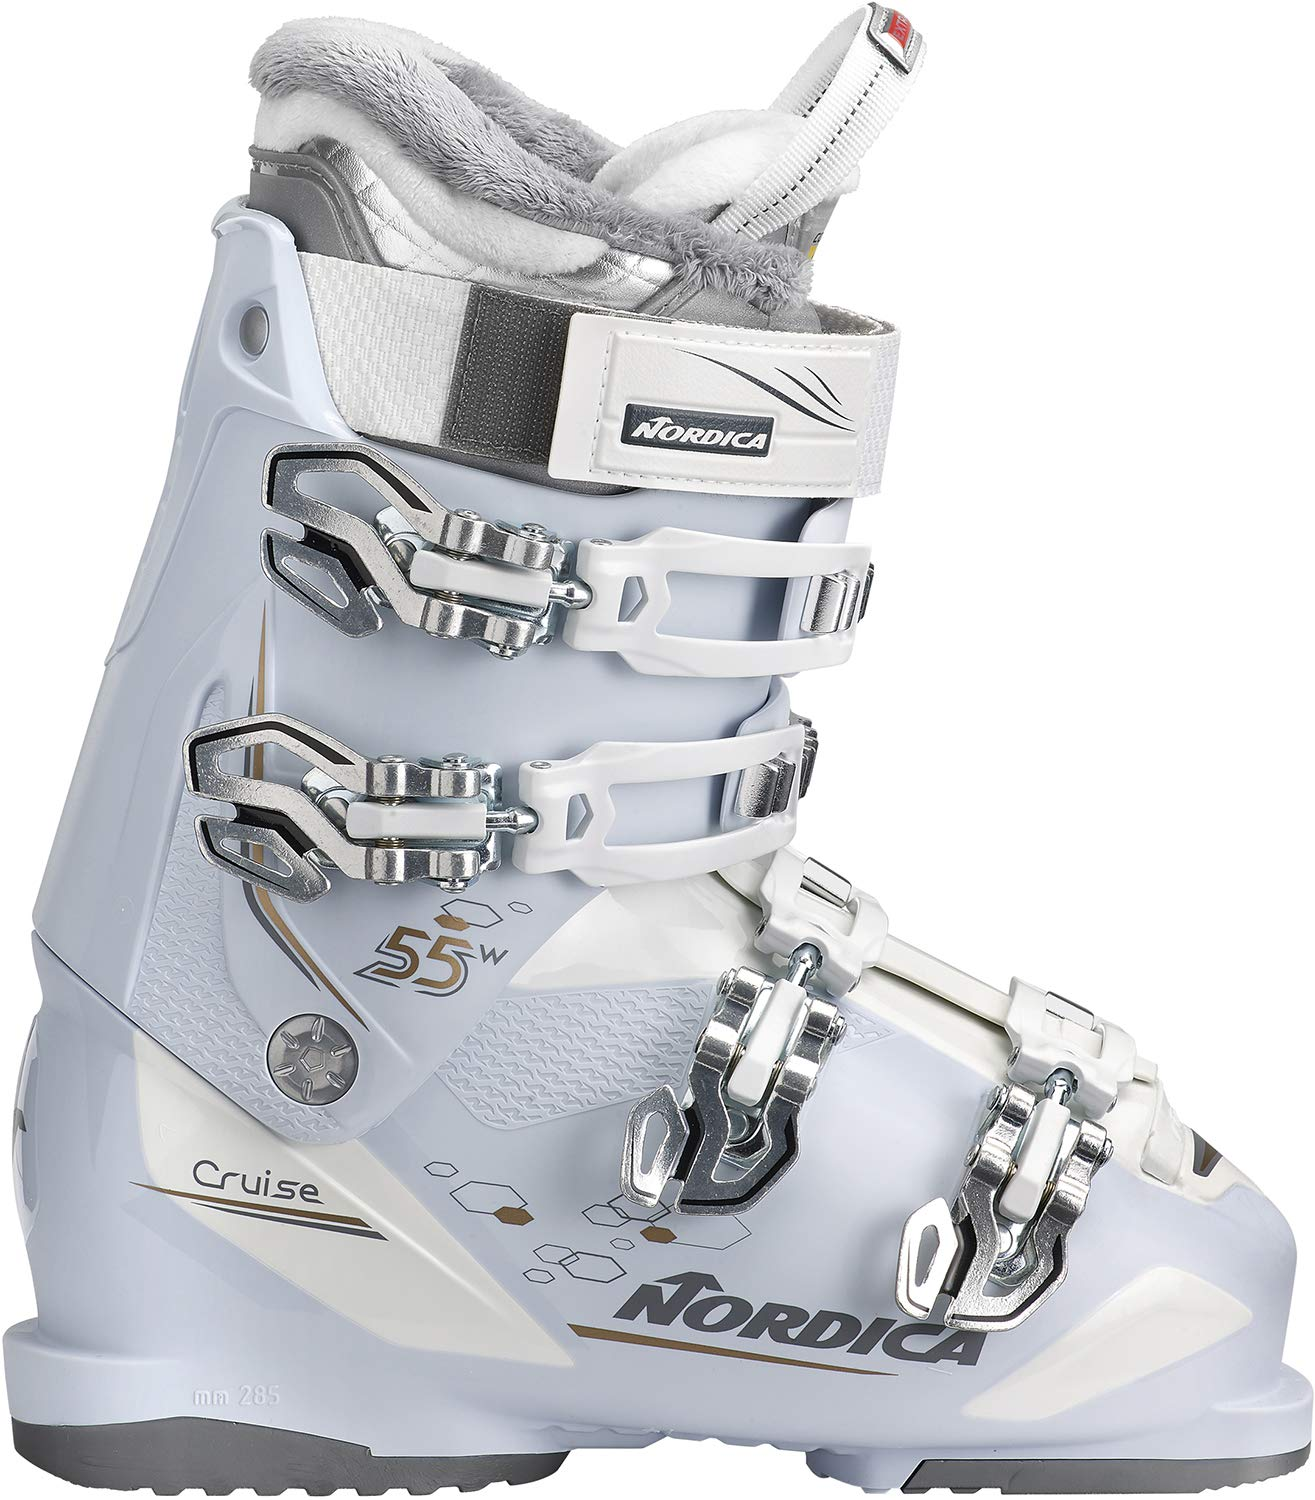 Nordica Cruise 55 W Womens Ski Boots